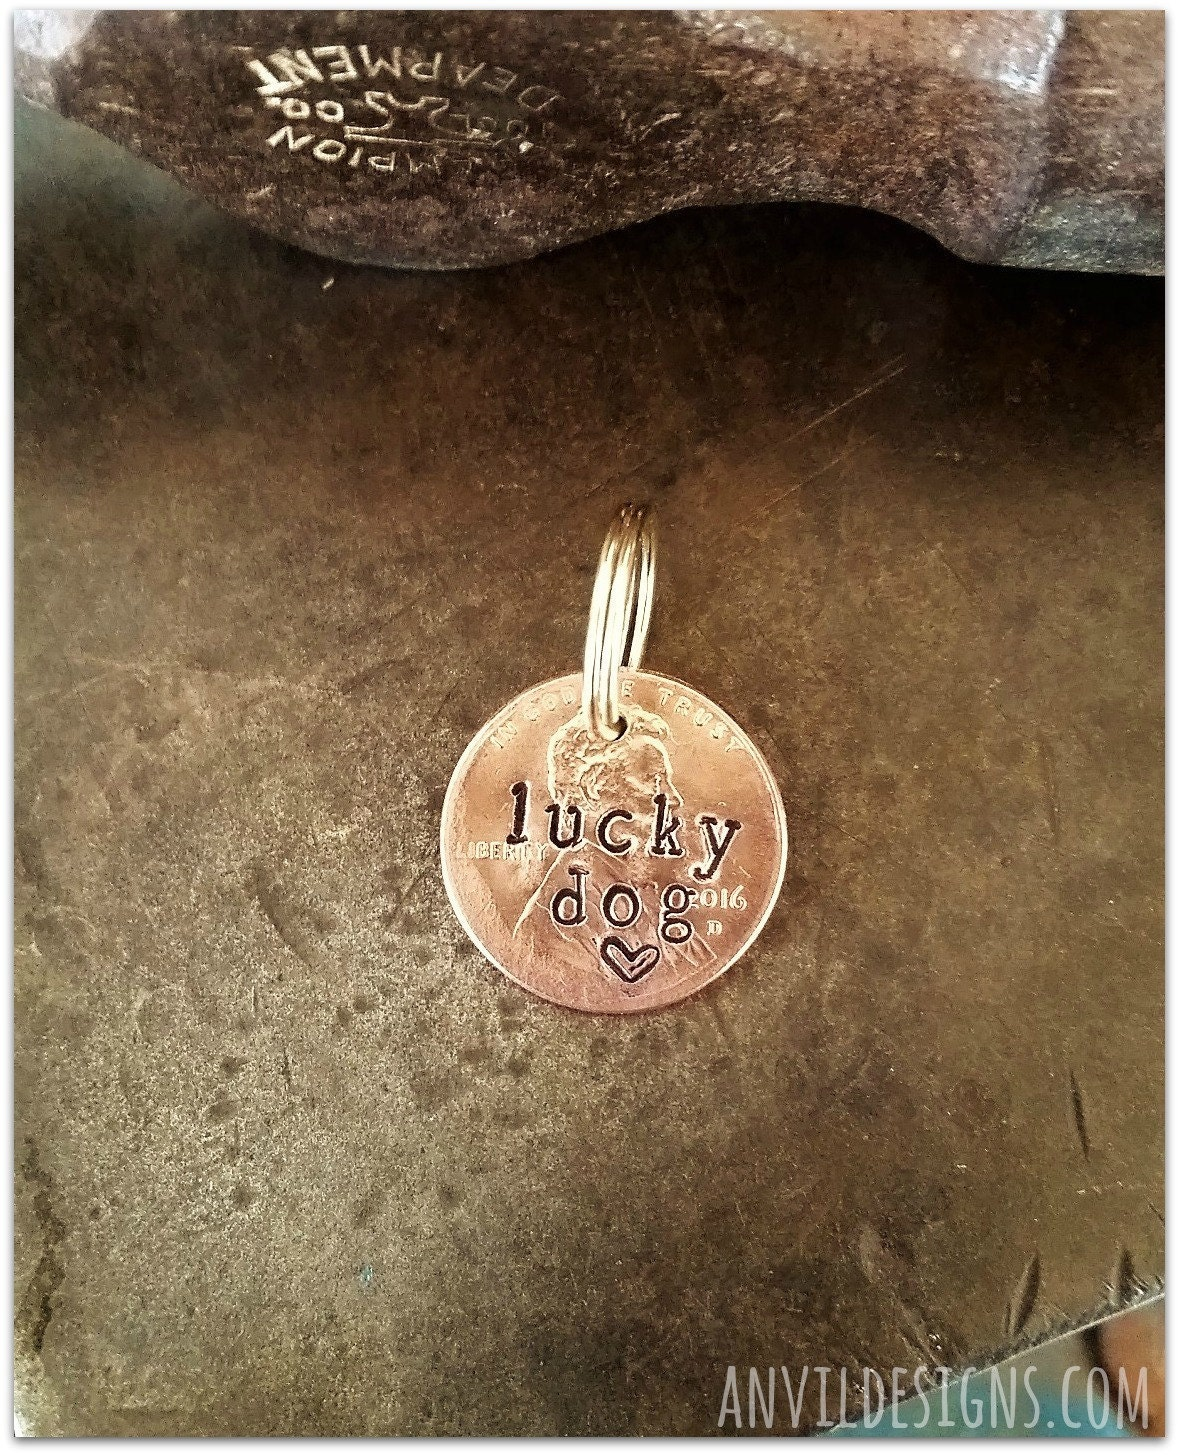 lucky dog penny dog tag anvil designs puppy bling dog lover